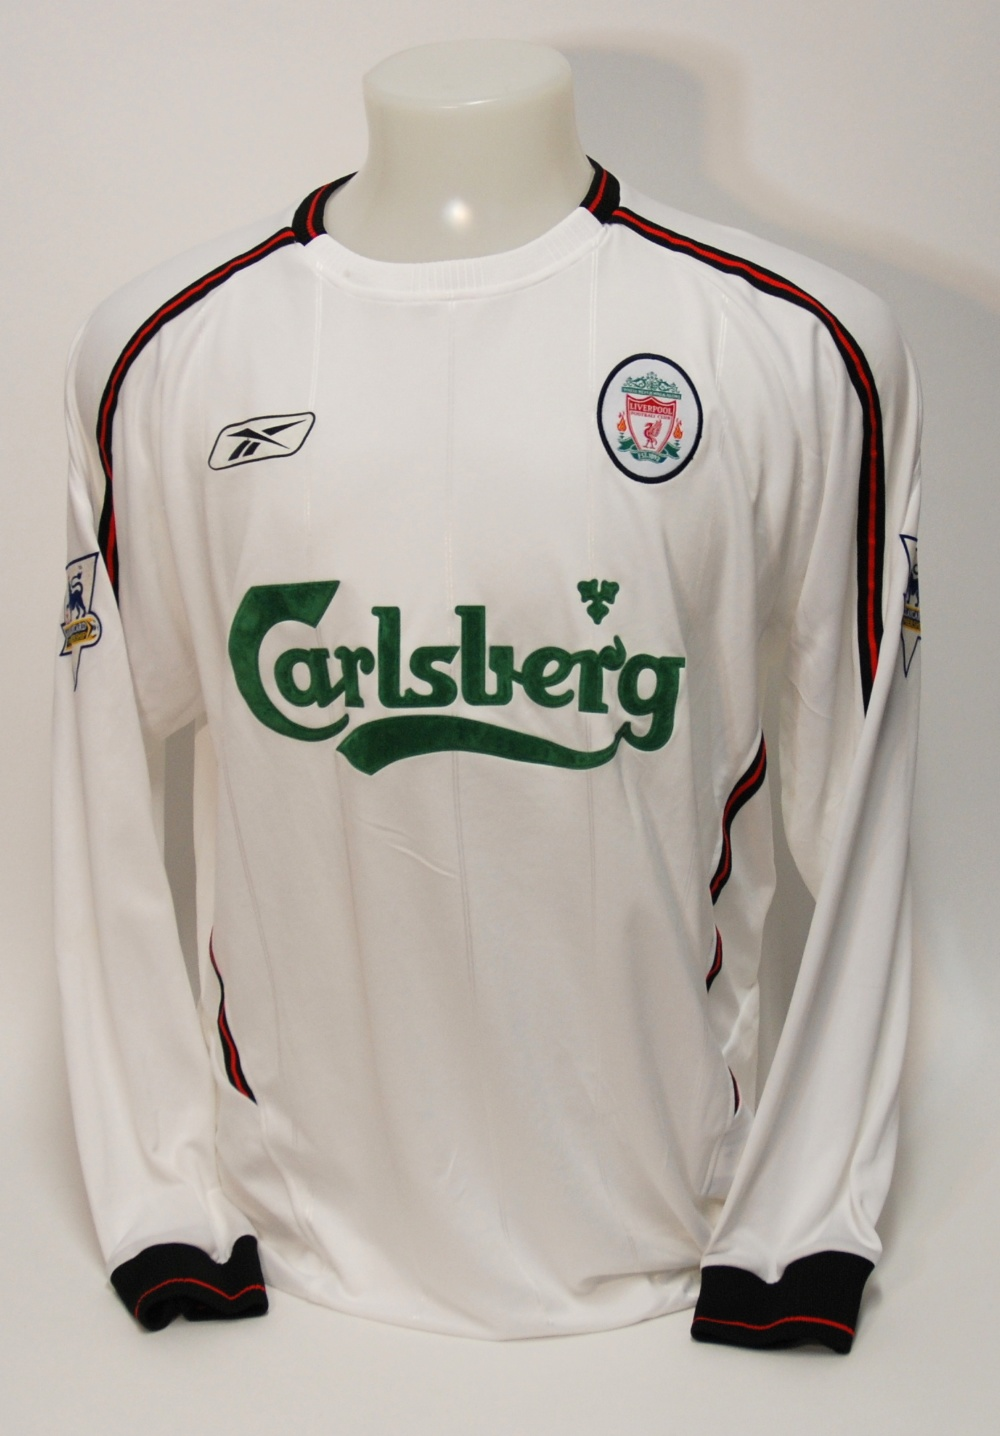 Lot 227A - A white Liverpool shirt No.8, with crew-neck collar and embroidered cloth badge, inscribed Liverpool